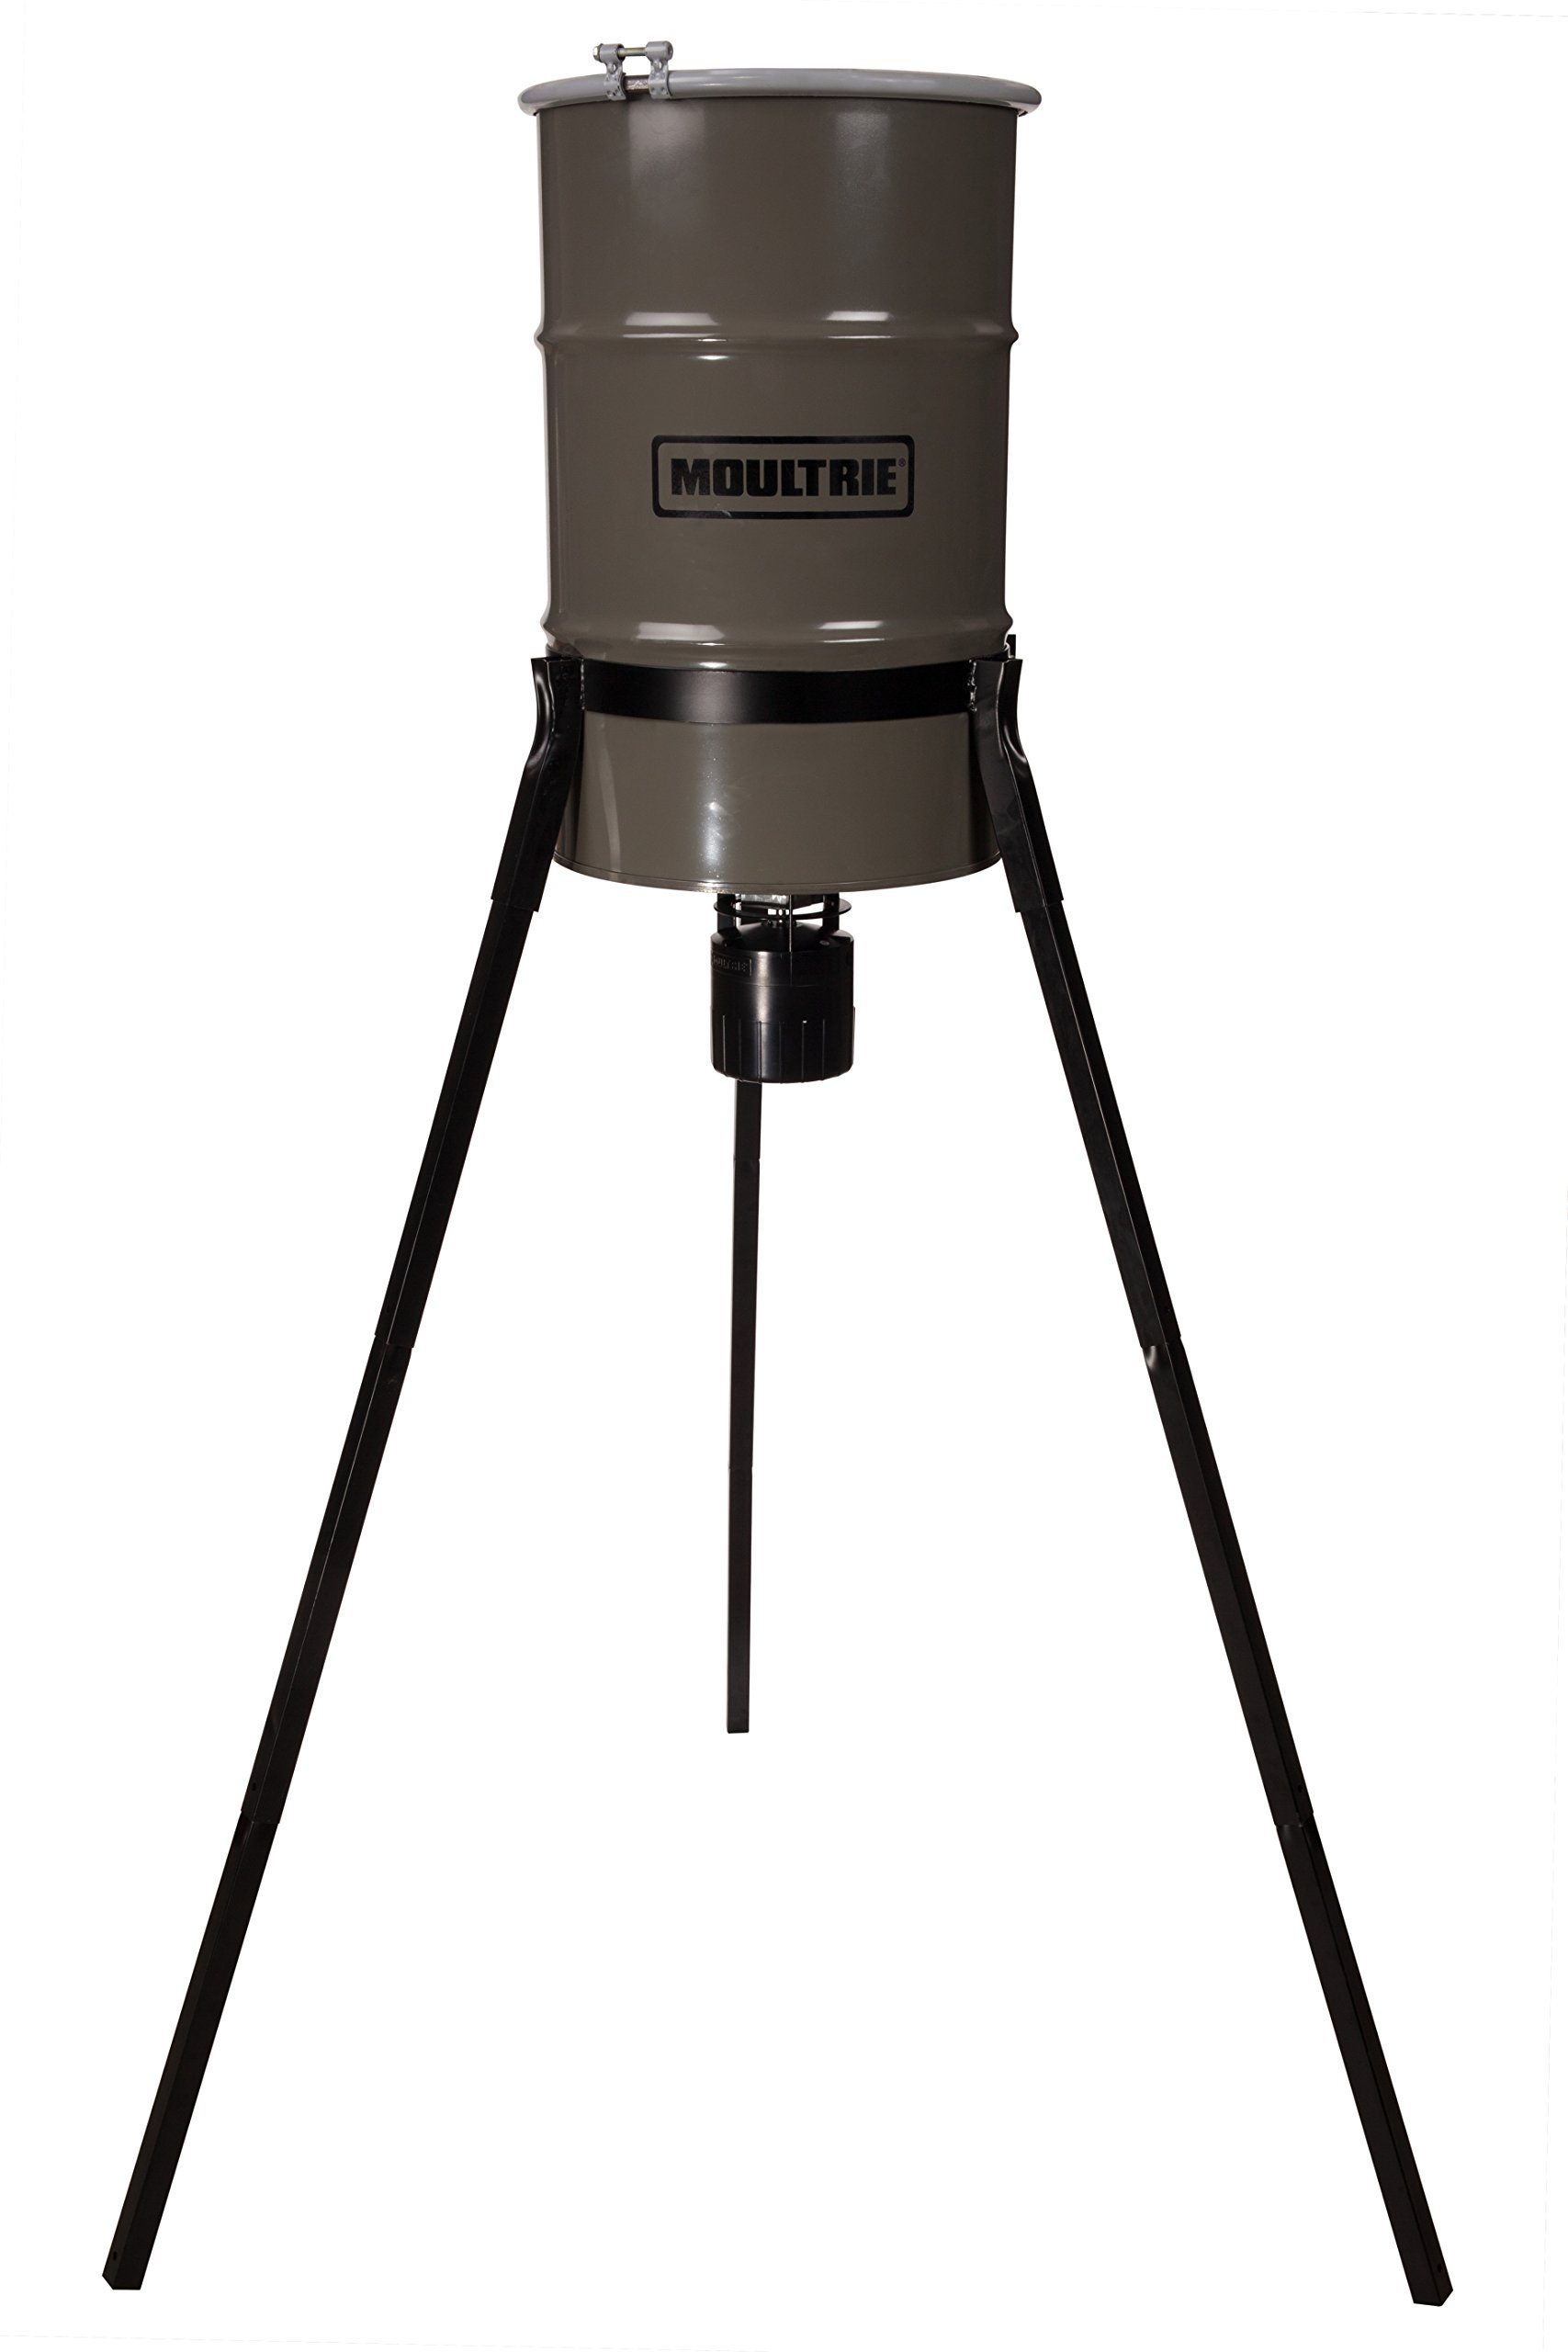 Moultrie 30 gallon Pro Hunter Tripod Feeder by Moultrie (Image #2)